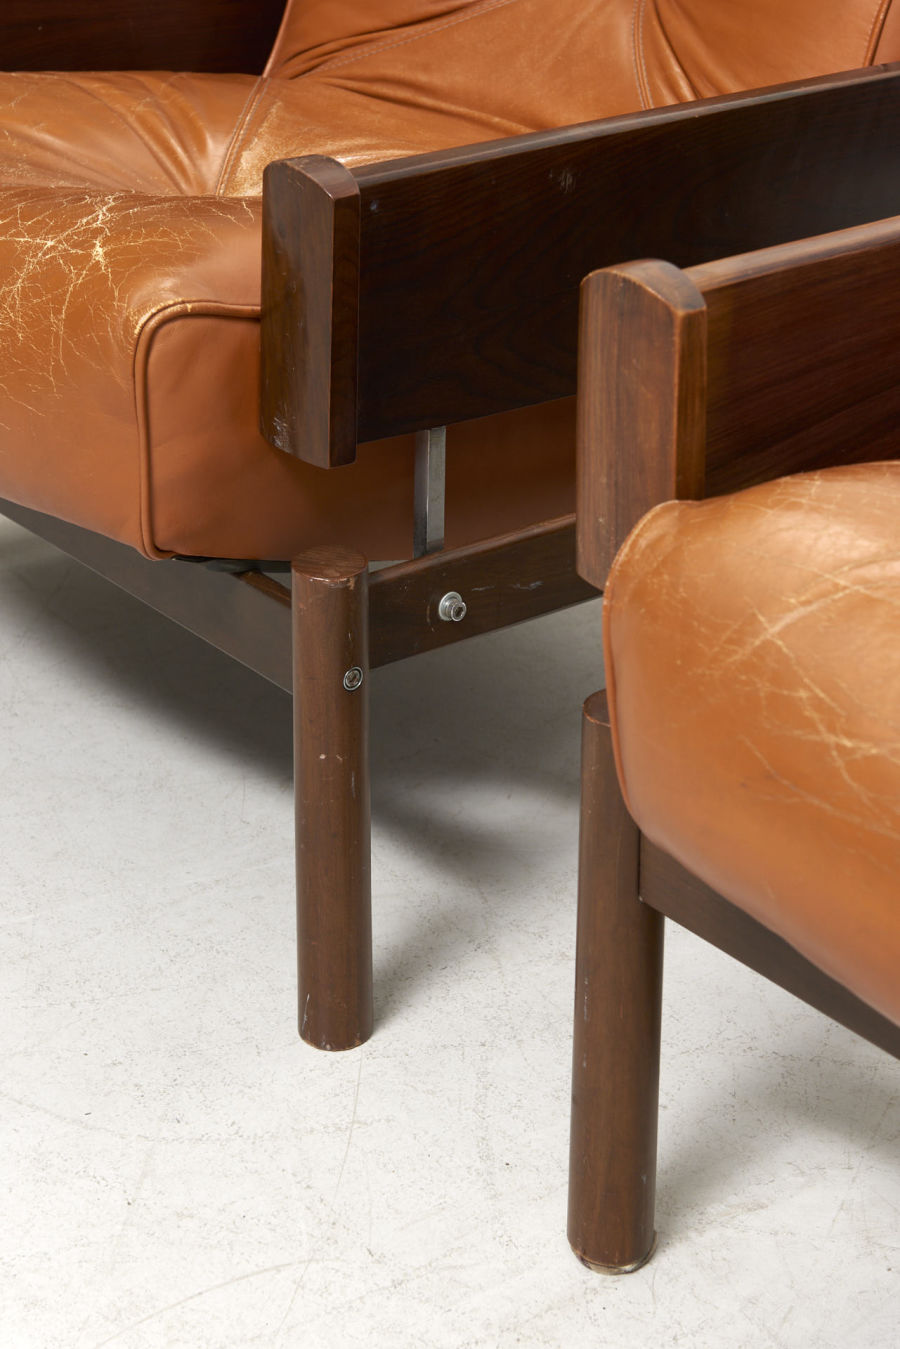 modestfurniture-vintage-2938-percival-lafer-easy-chairs09